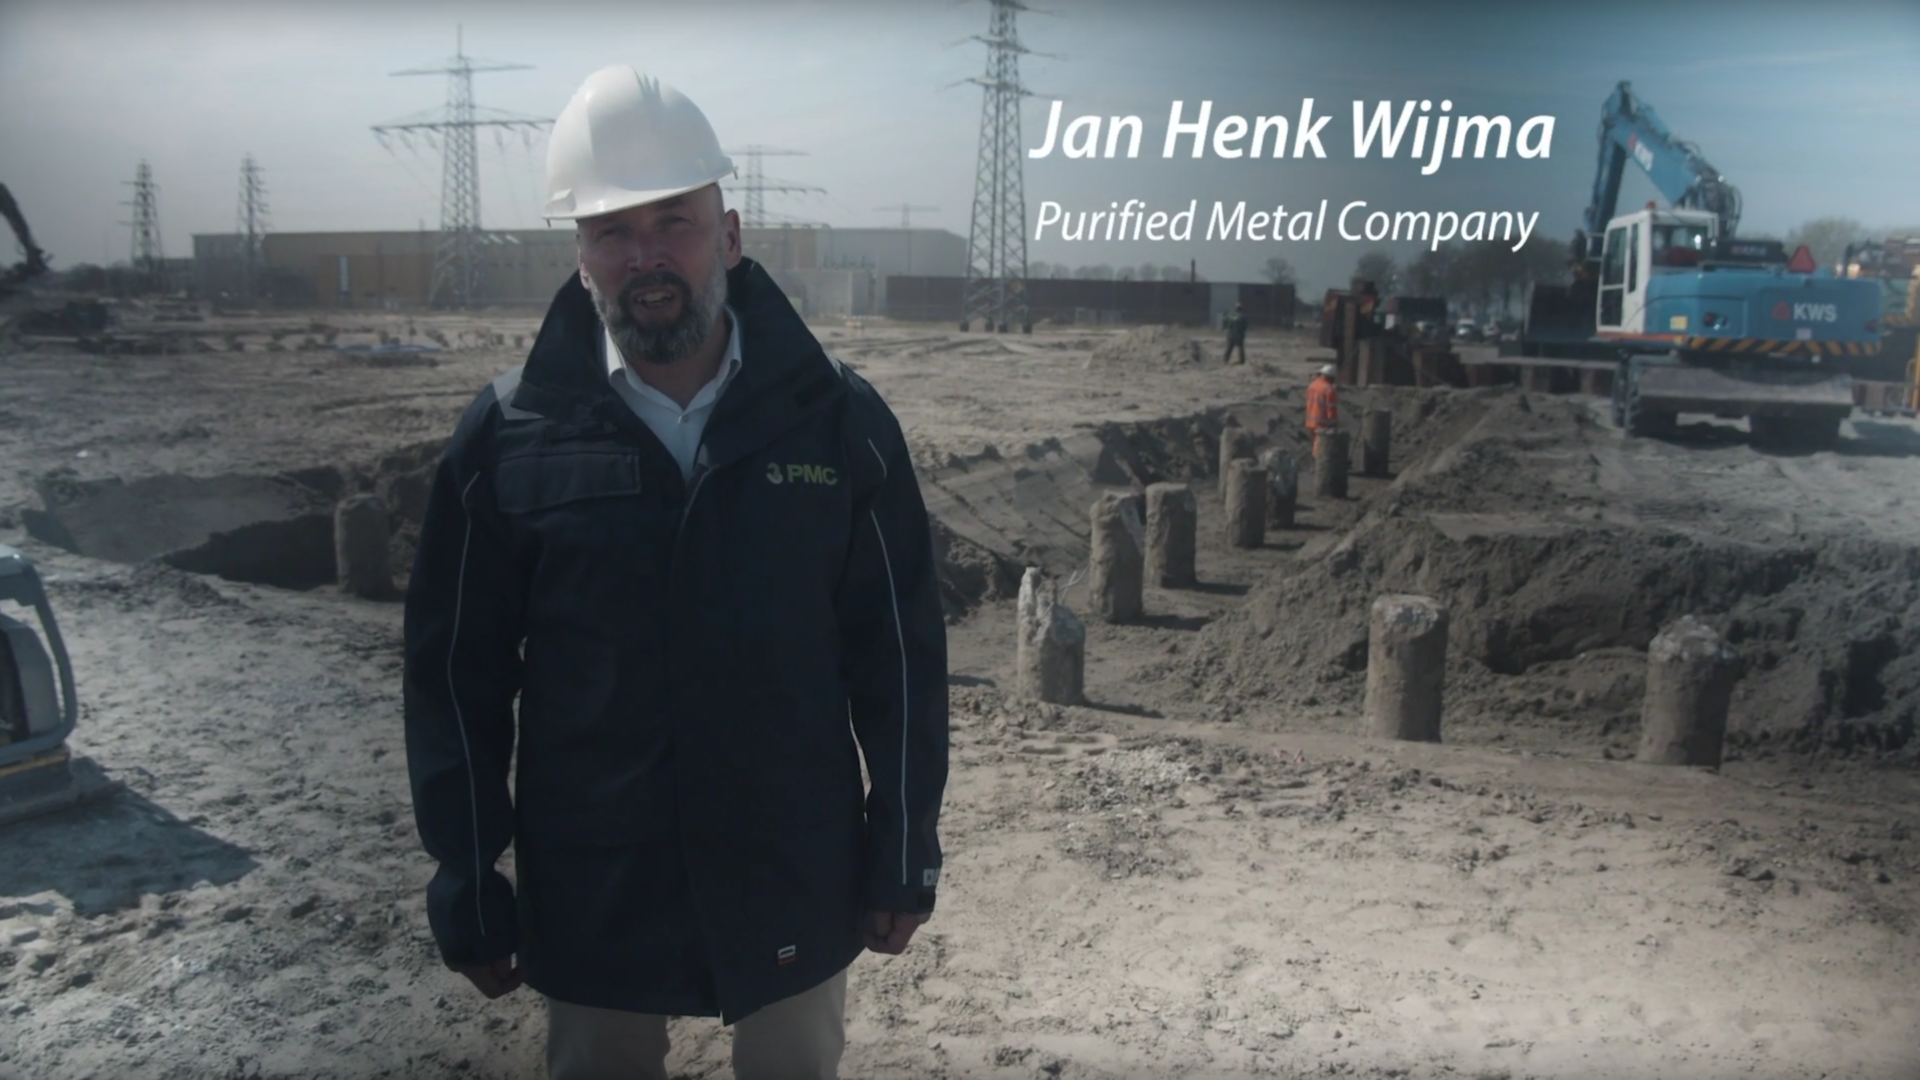 Purified Metal Company in nationale Rabobank marketing campagne!